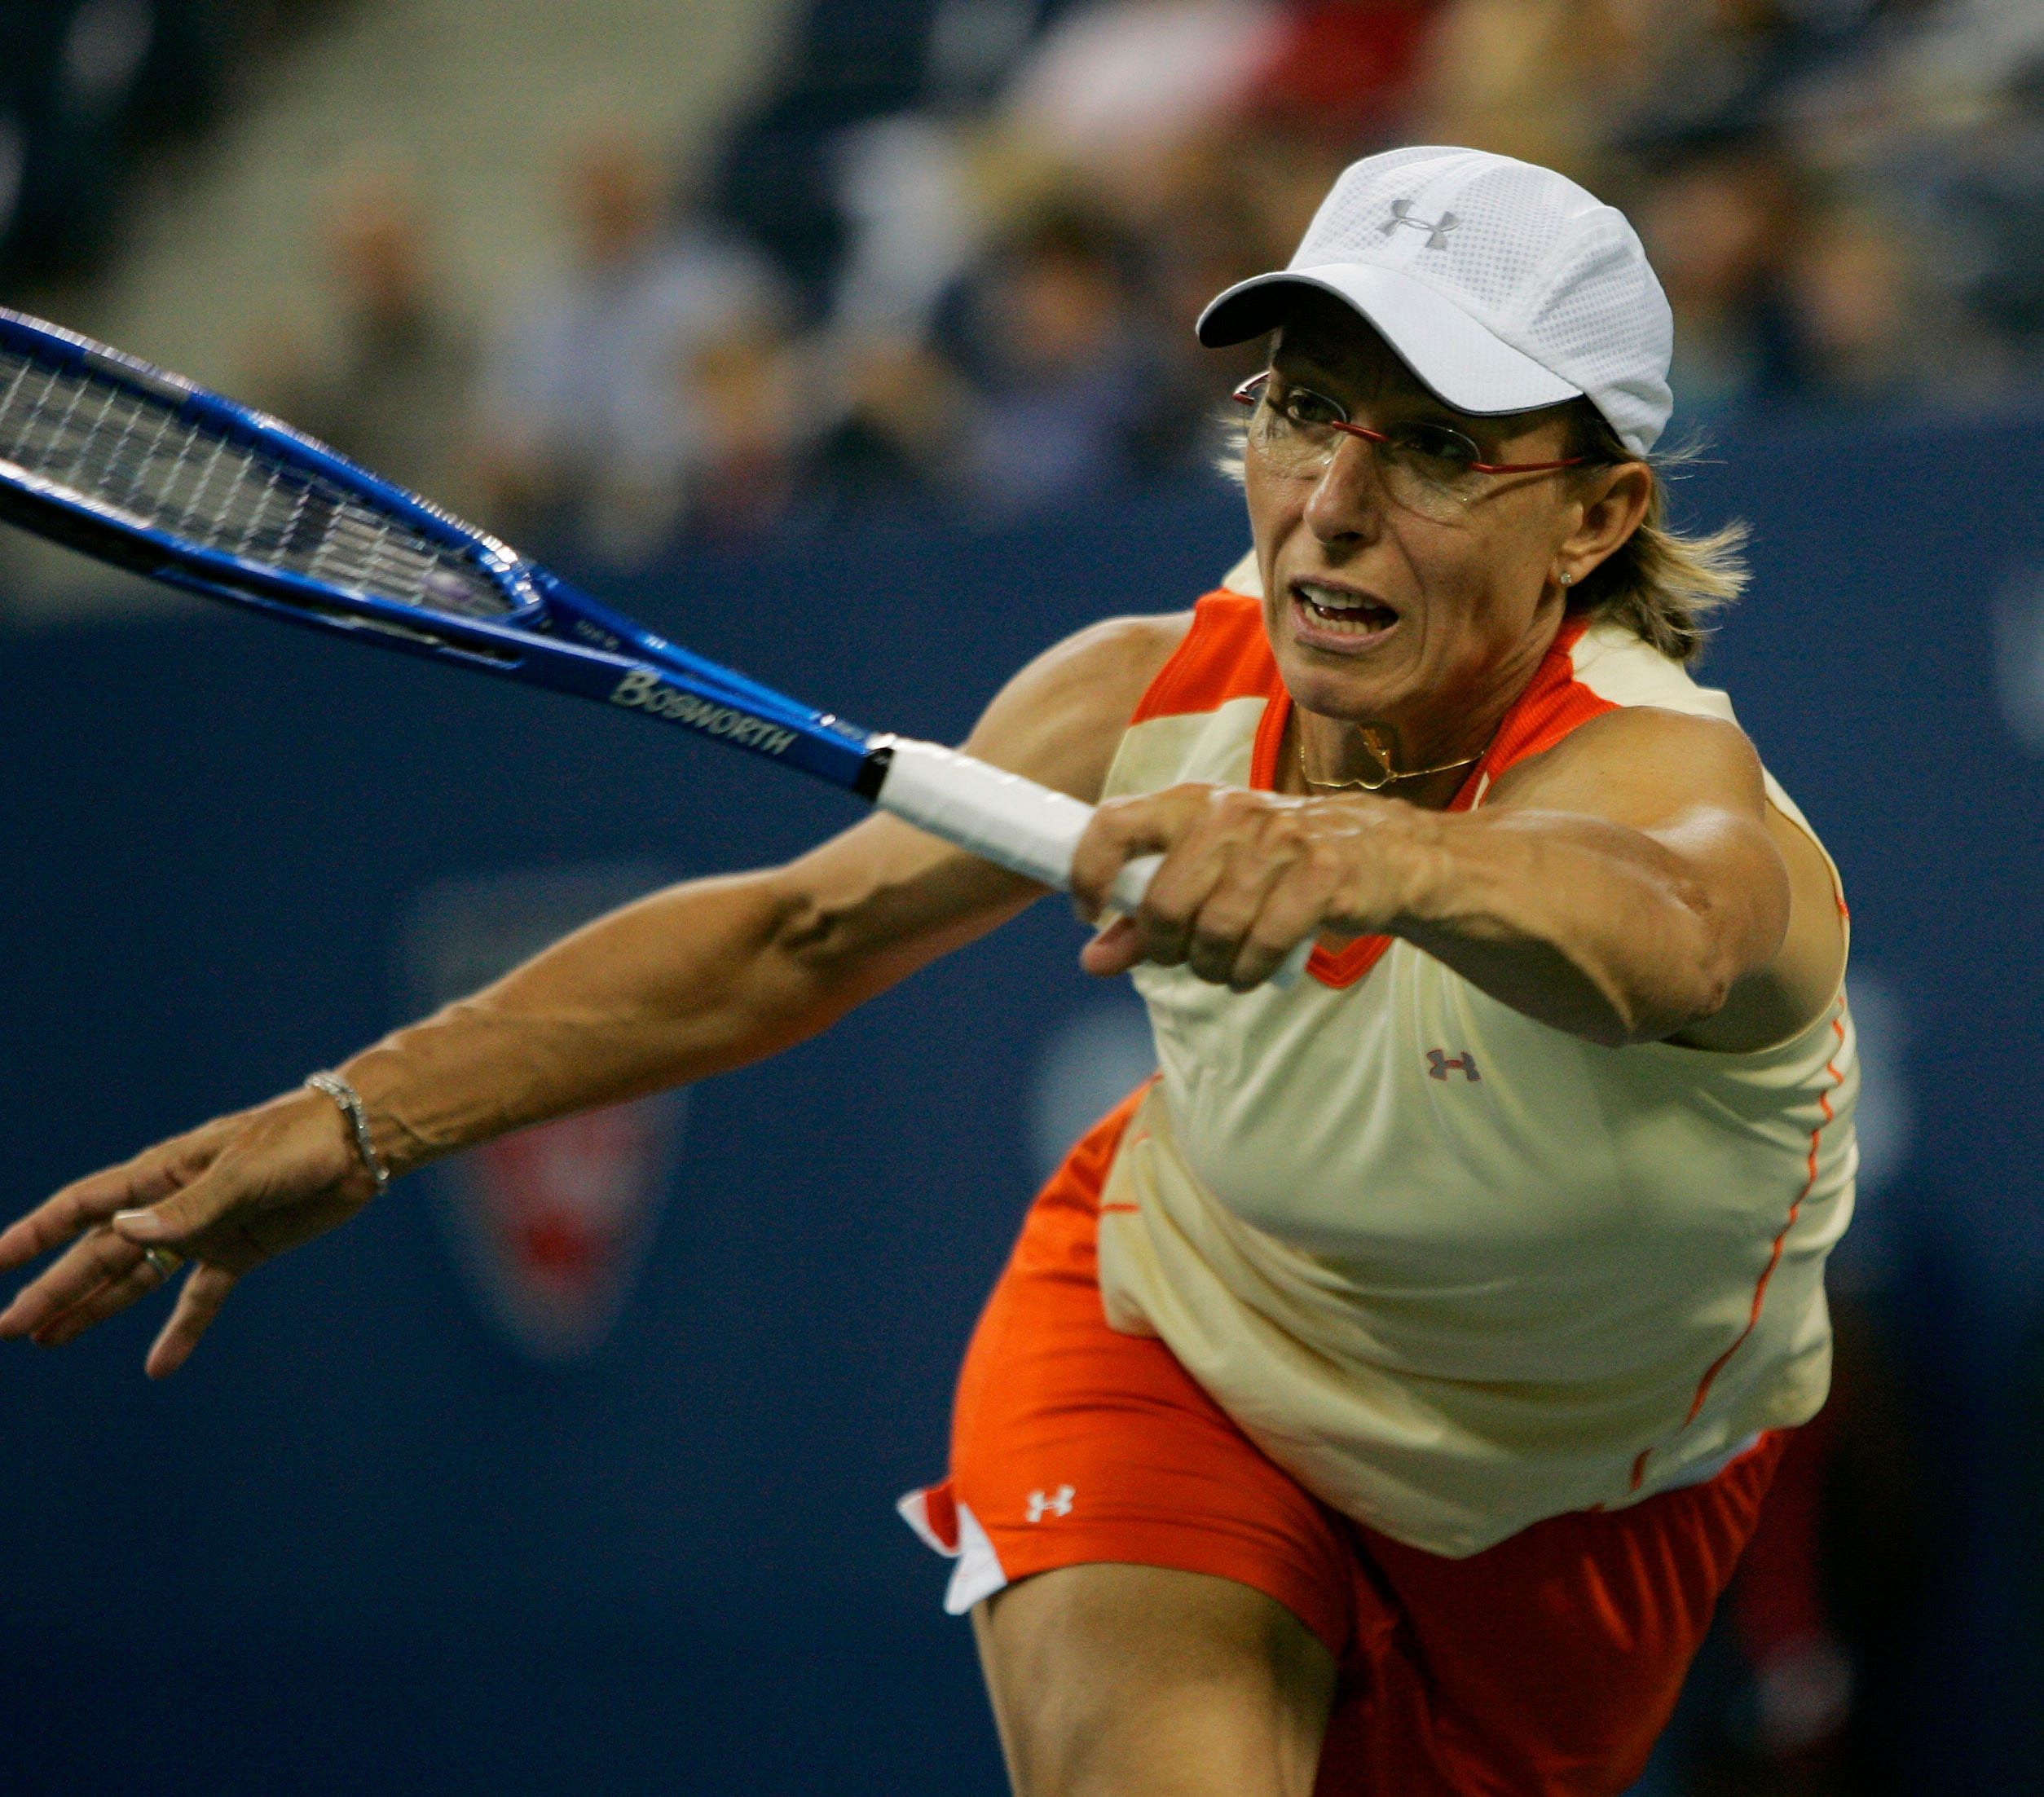 Martina Navratilova 18 Grand Slam singles titles Martina Navratilova 18 Grand Slam singles titles new pics